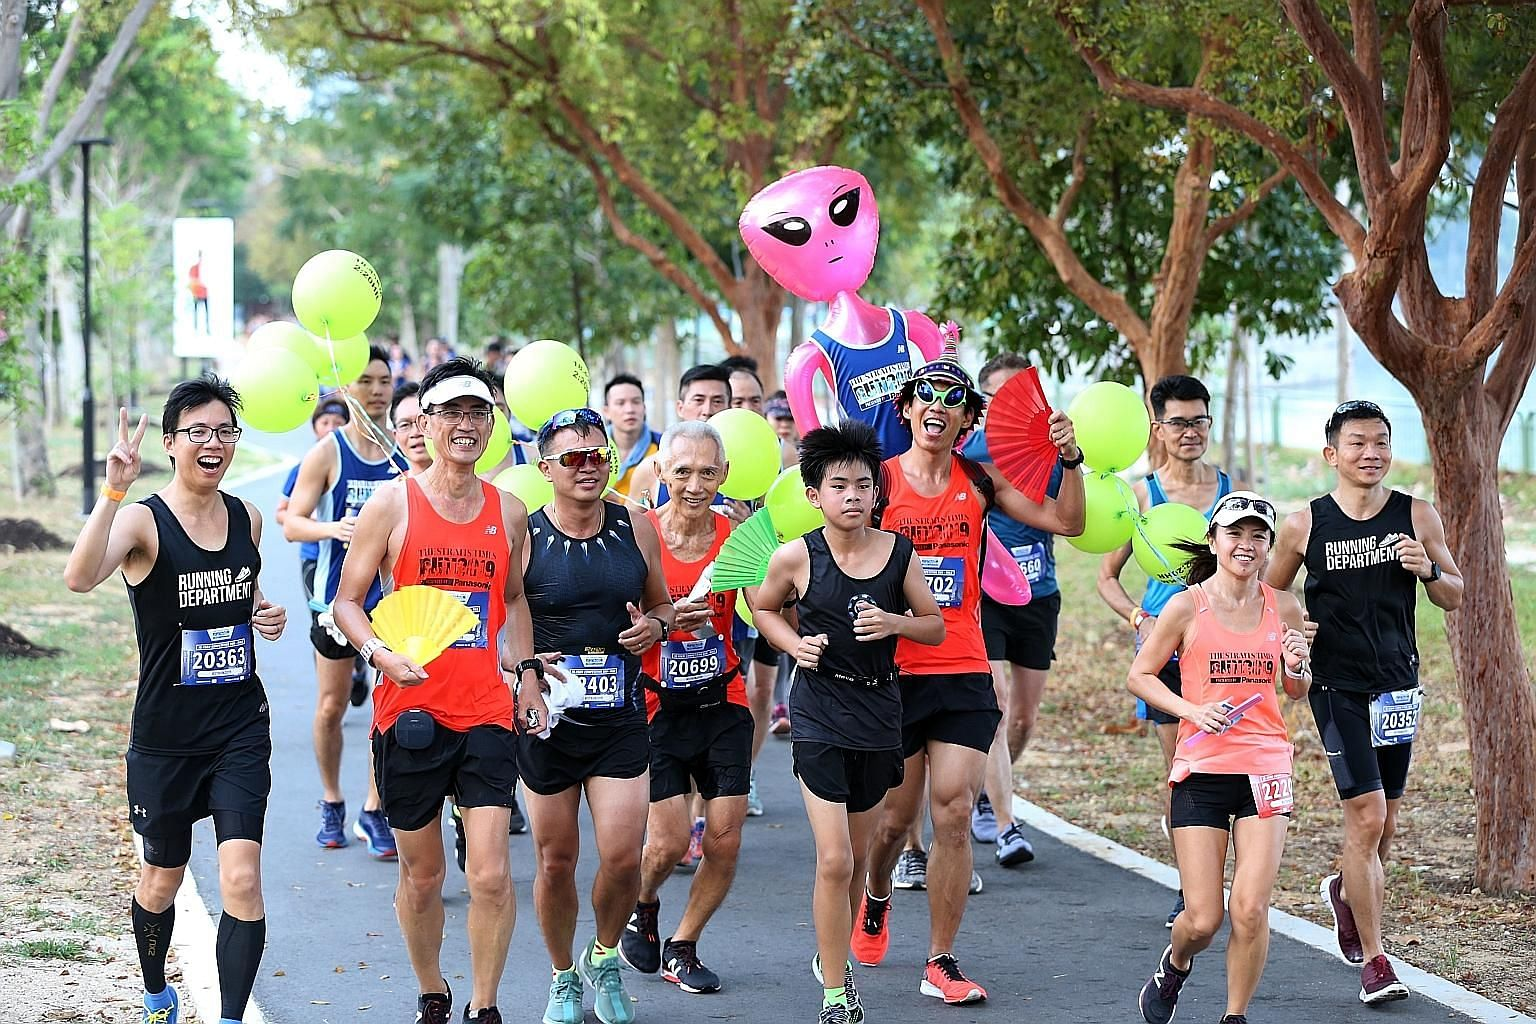 If you felt absolutely knackered at the end of The Straits Times Run and ran the second half of the race at least as fast as the first half, you would have maximised your performance. ST PHOTO: ONG WEE JIN